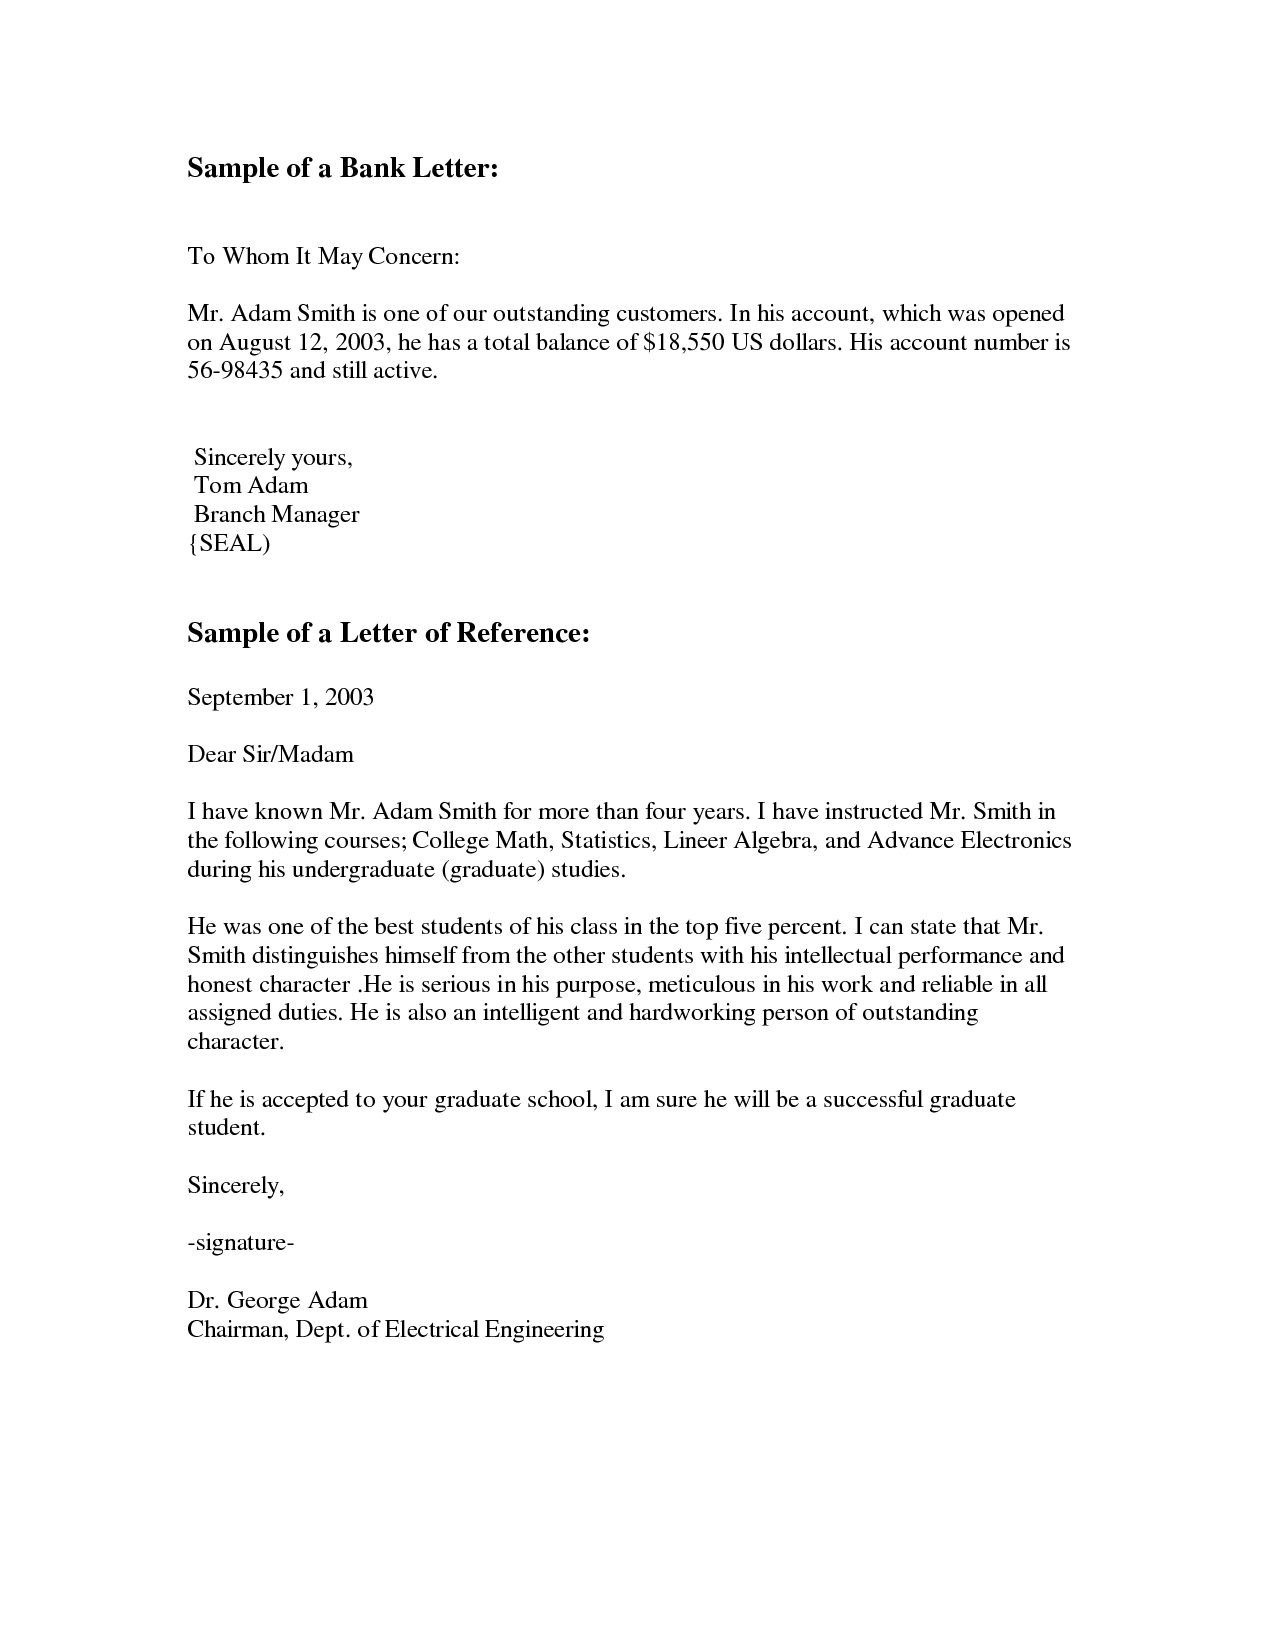 Sample Letter Of Recommendation Template - New Letter Re Mendation Template for Student